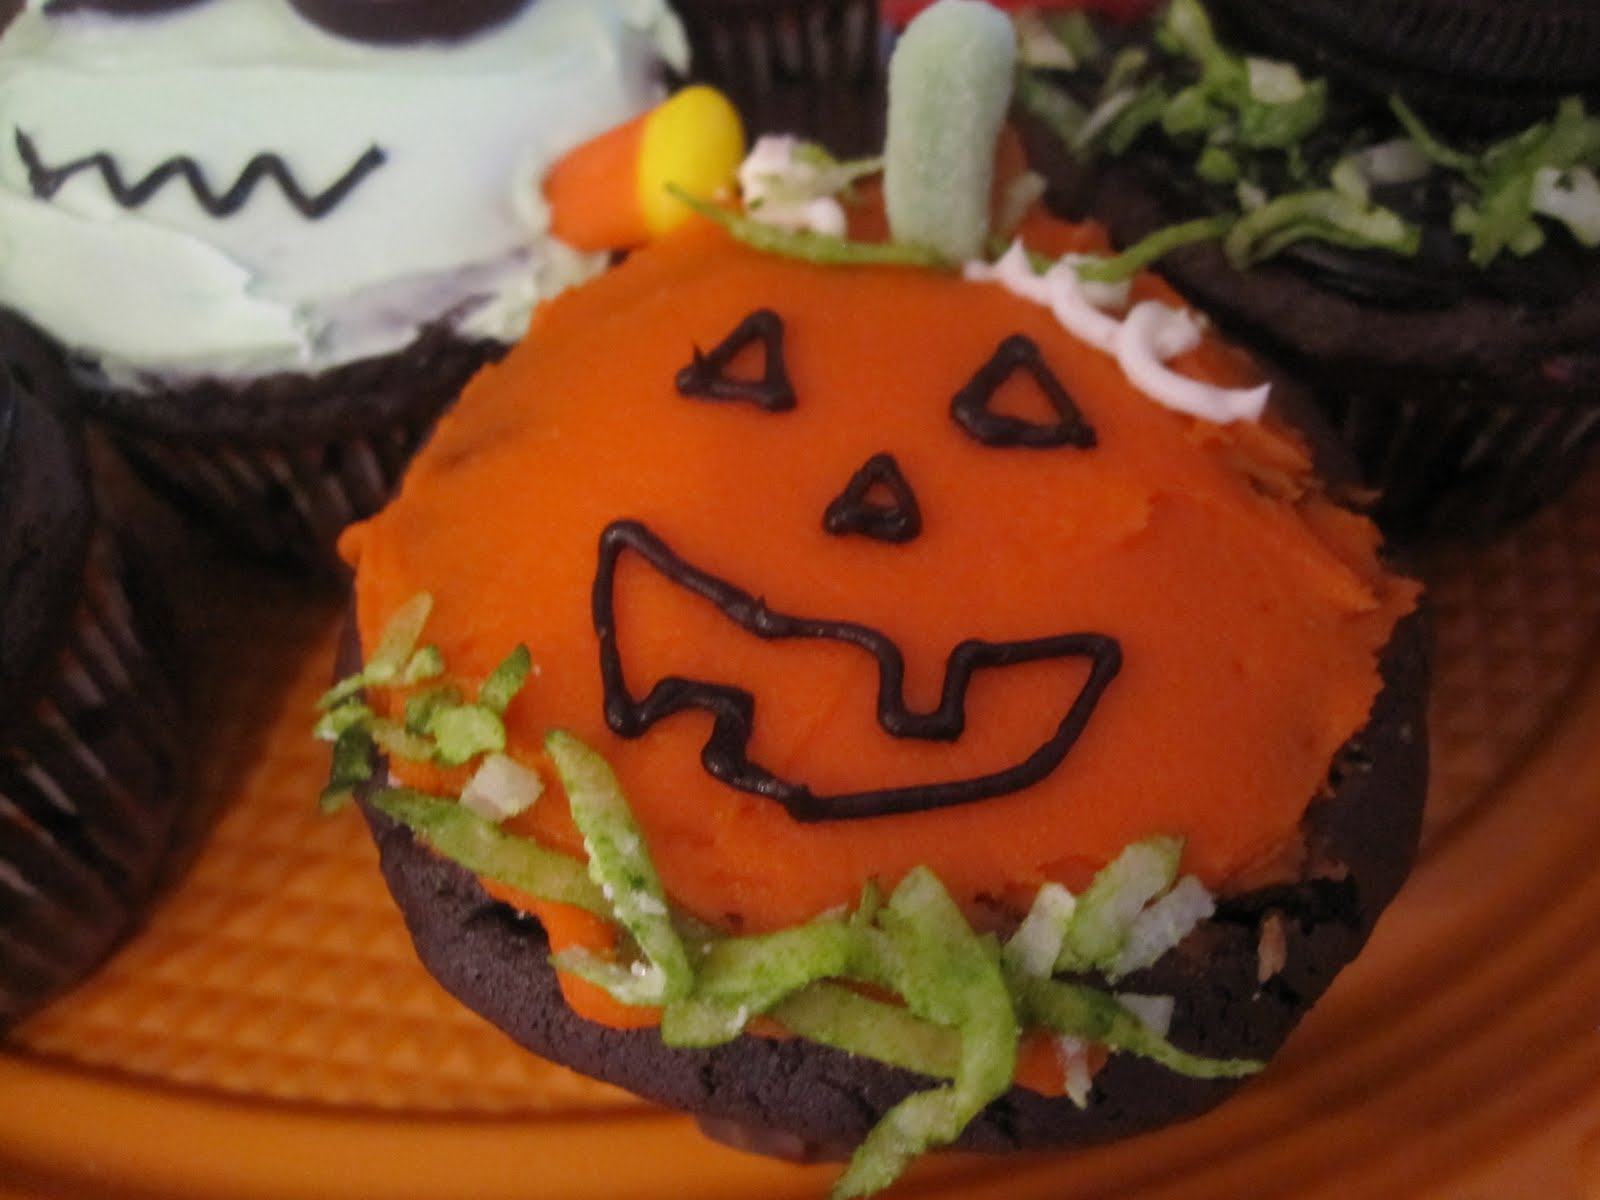 Halloween Cupcake Decorating Ideas Gummy Worms : Neighbor Julia: Halloween Cupcakes That Kids Can Decorate!